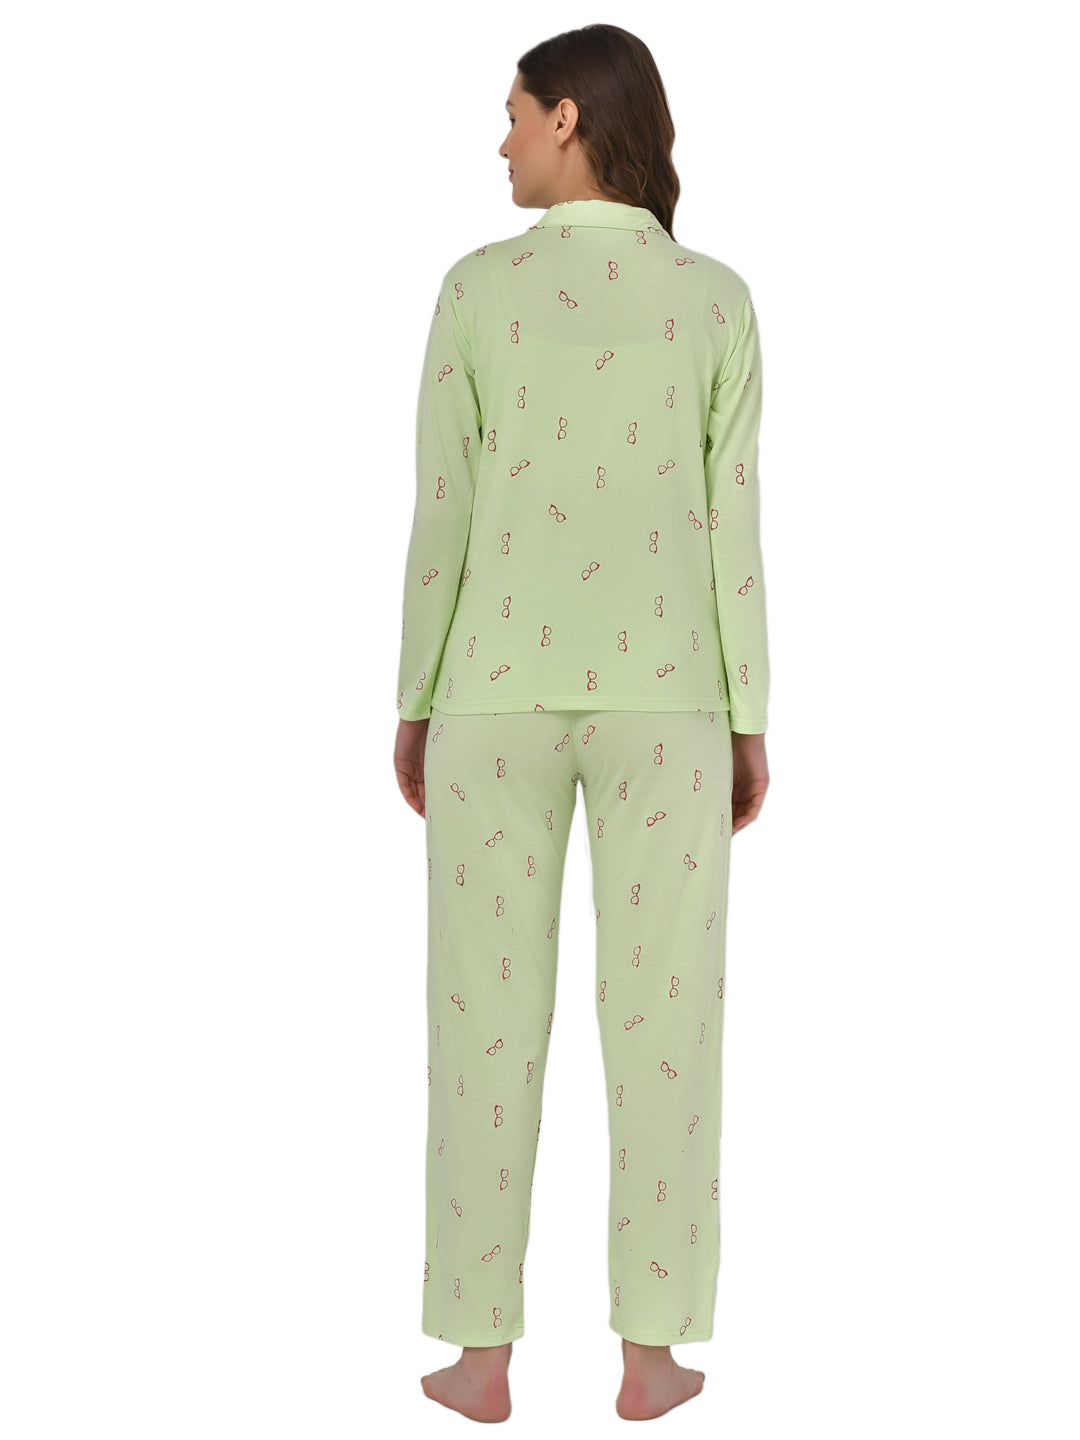 Klamotten Women's Sea Green Allover Printed Top Pyjama Set N54Gs